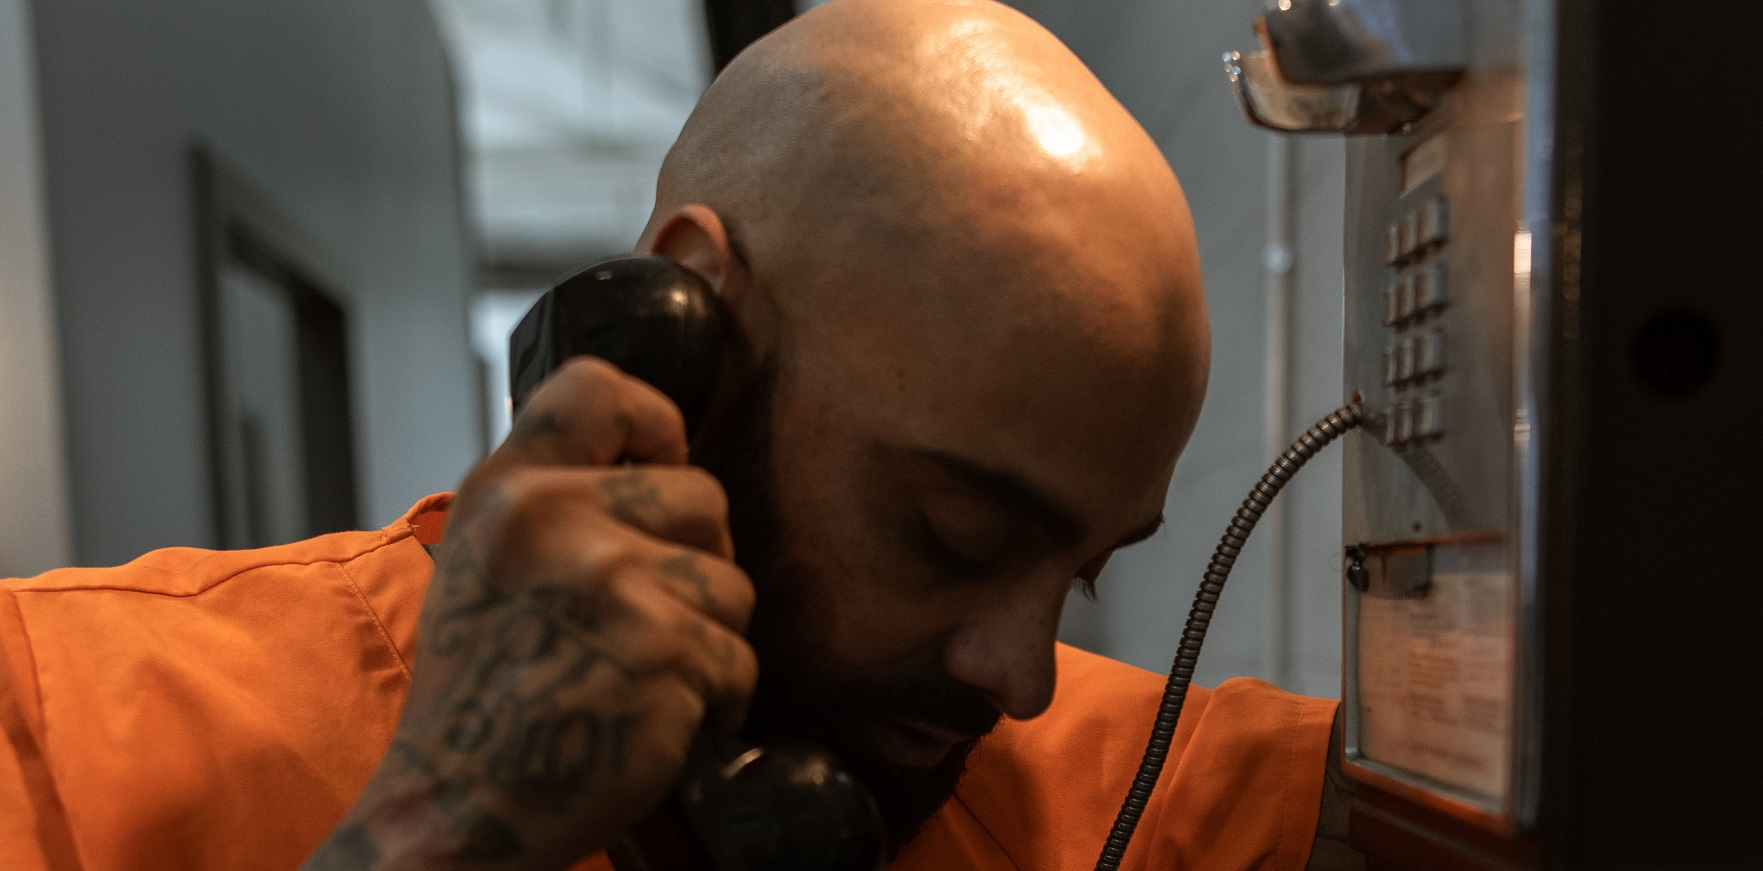 Crossroads student, now released from prison, hasn't forgotten his friends inside